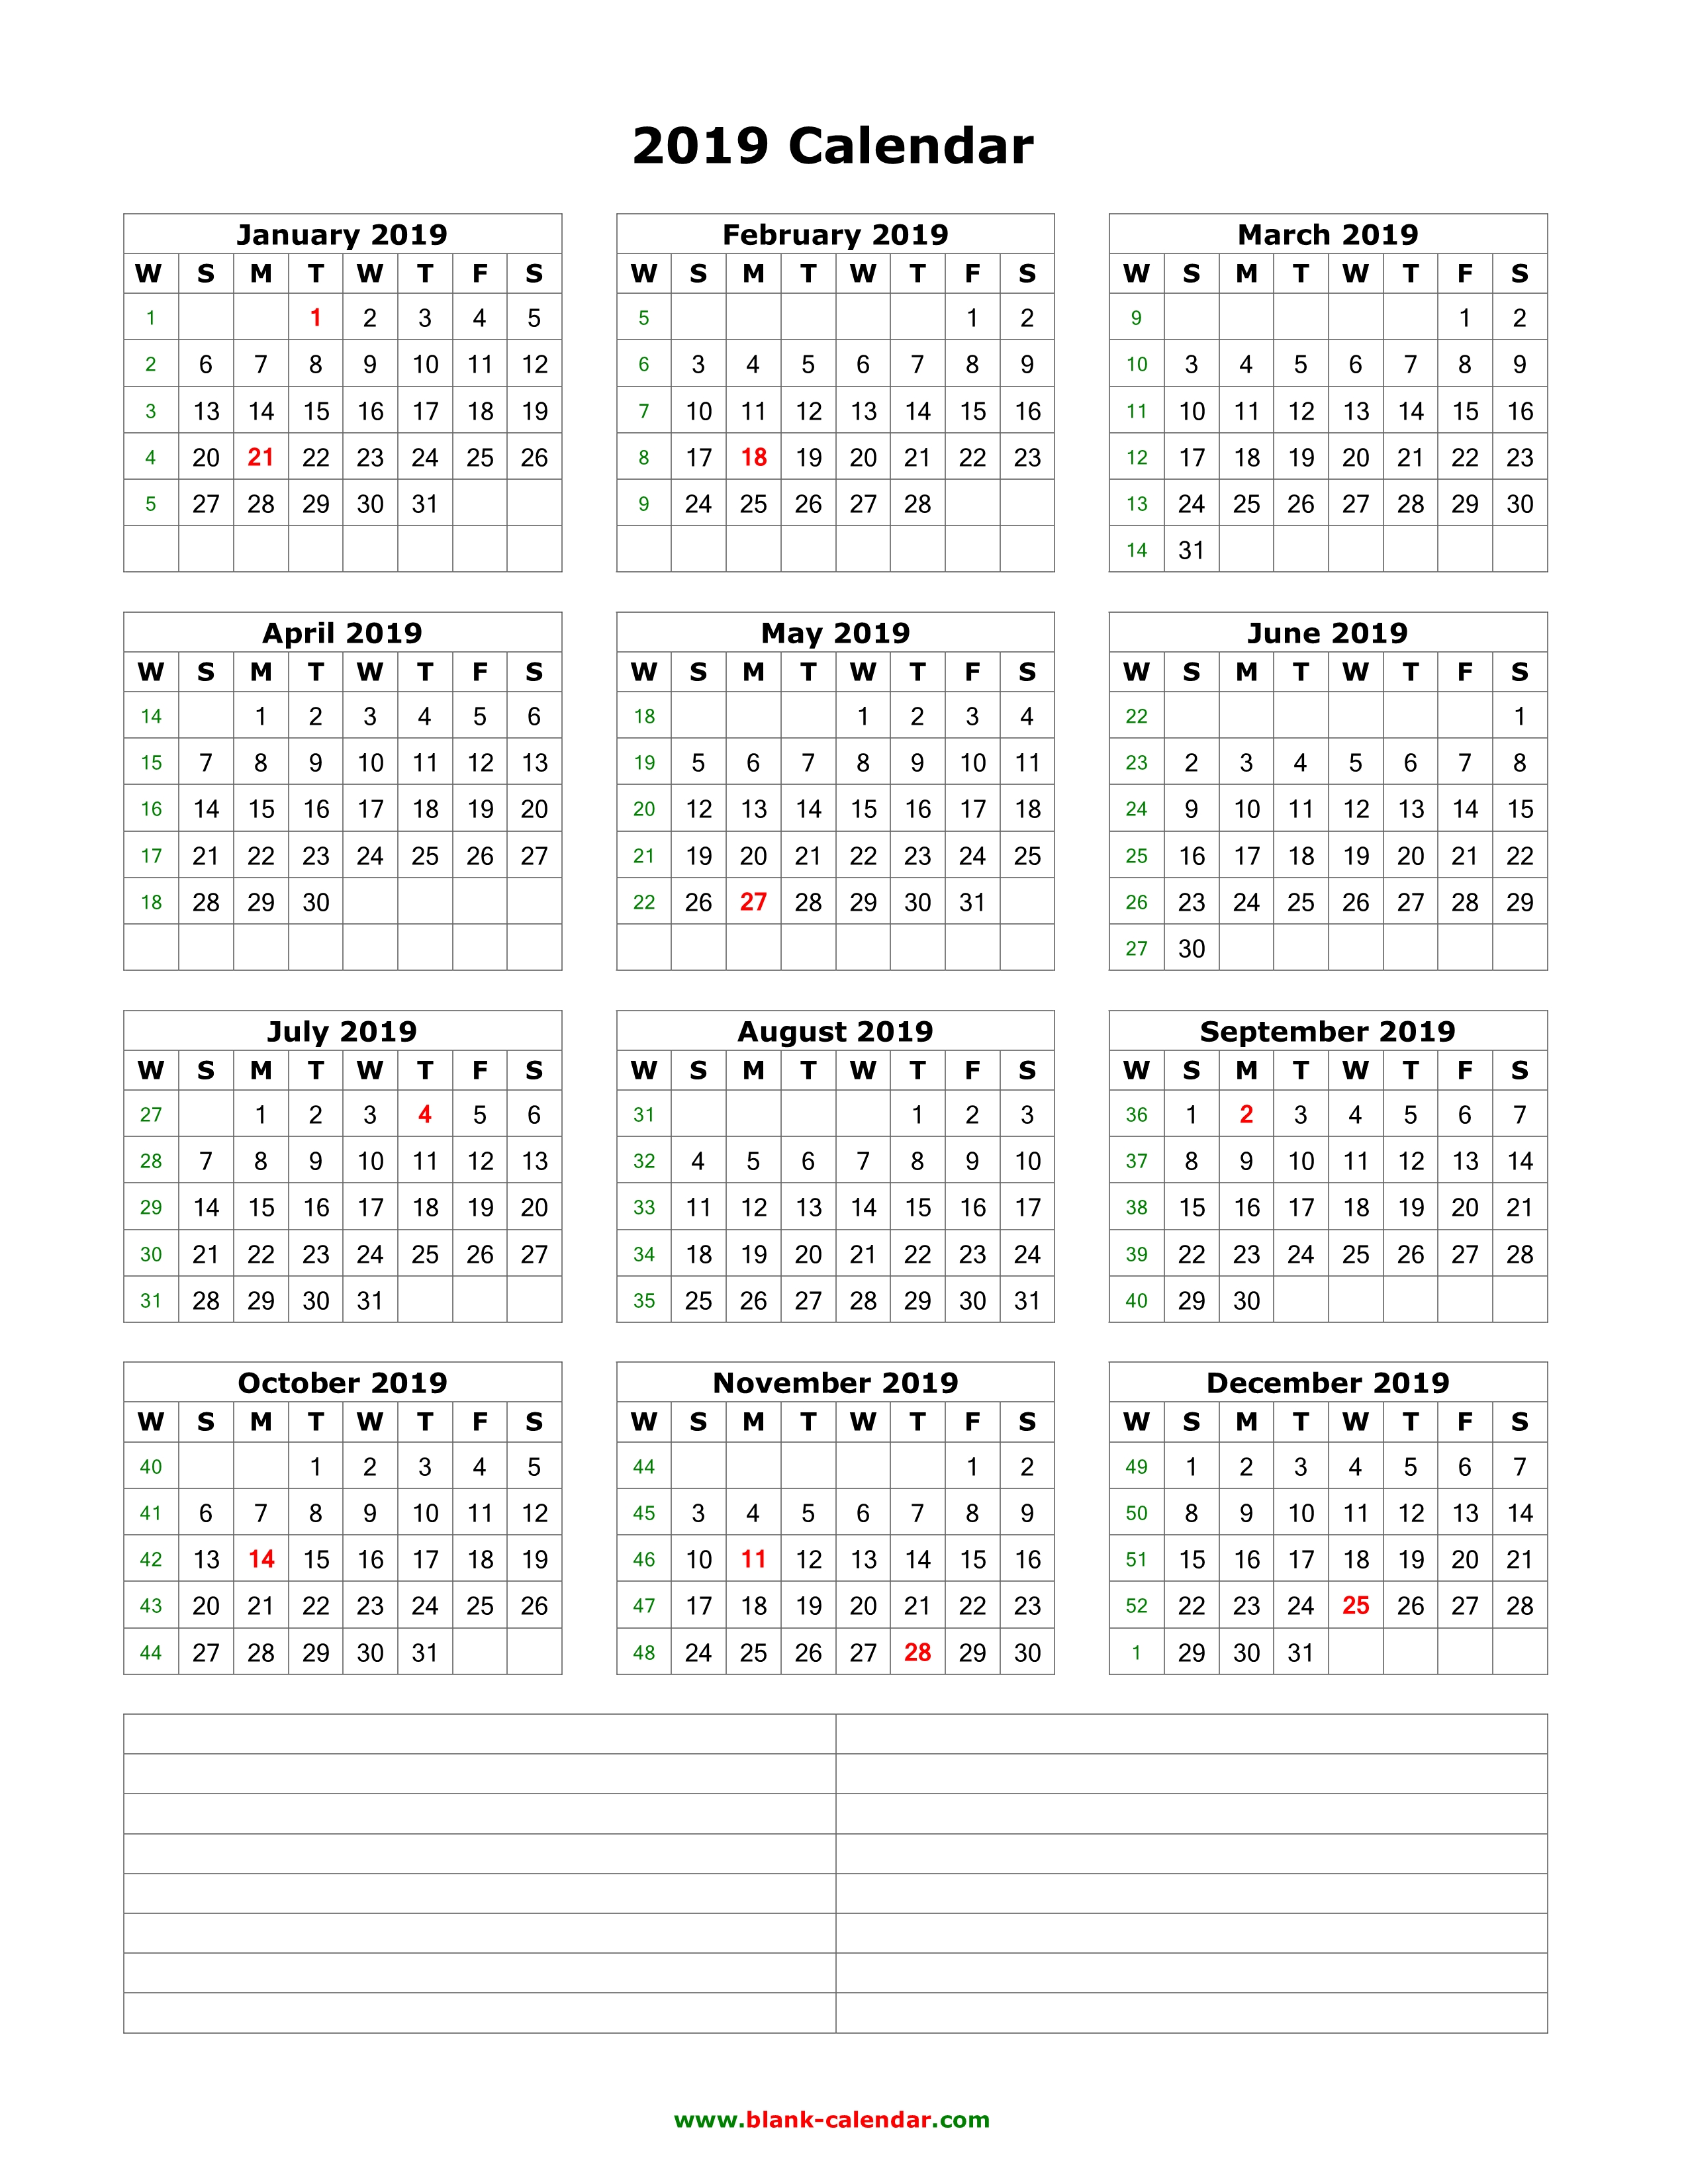 blank calendar 2019 one page vertical space for notes